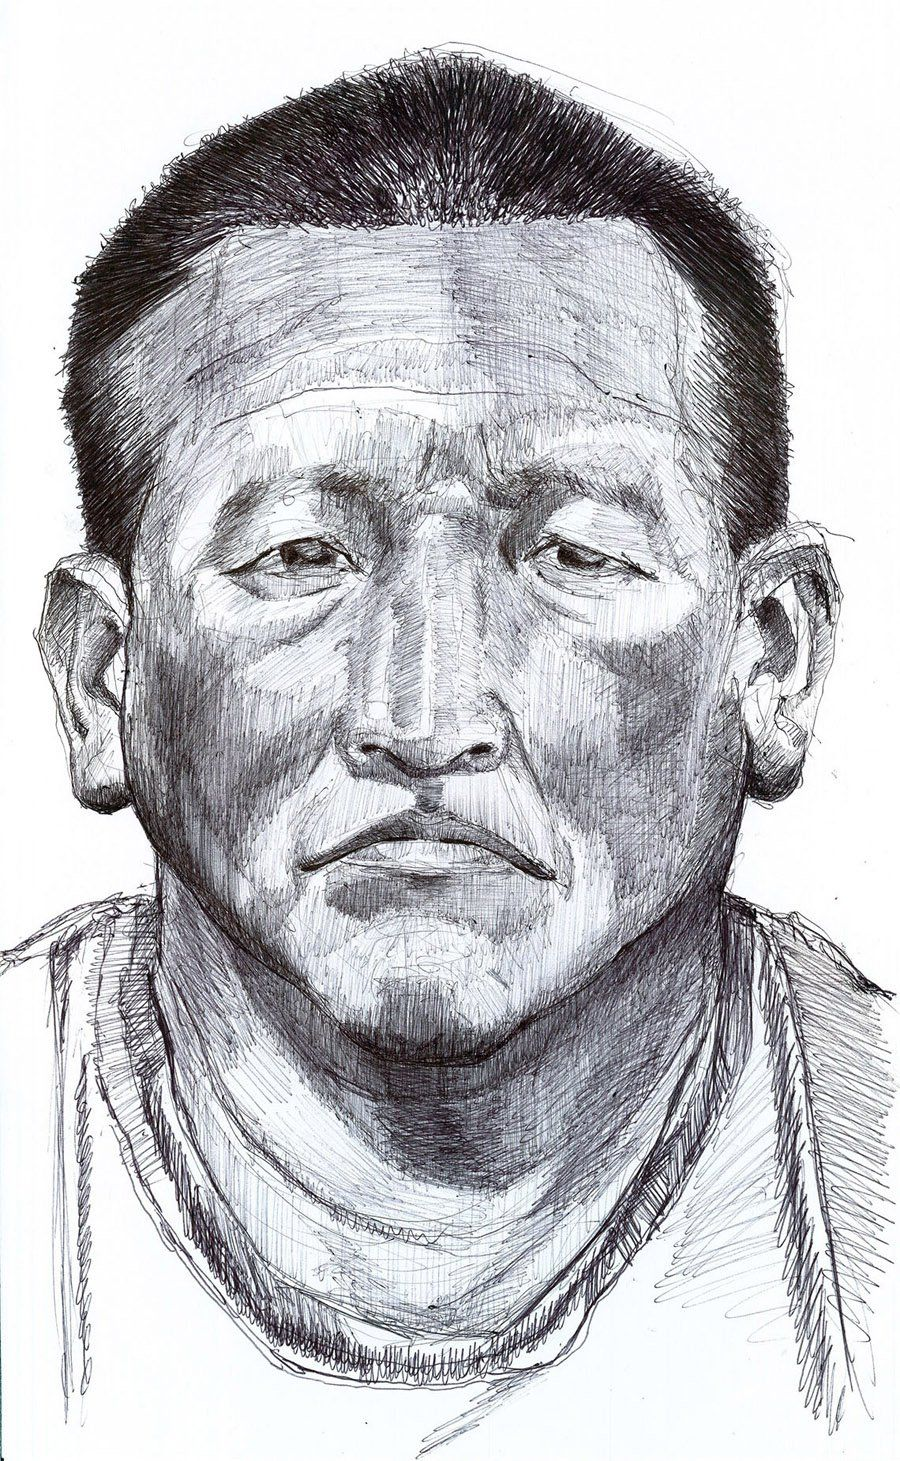 Roberto Guatemala, 2012.Ball point pen on paper. 14 x 18.5 in.